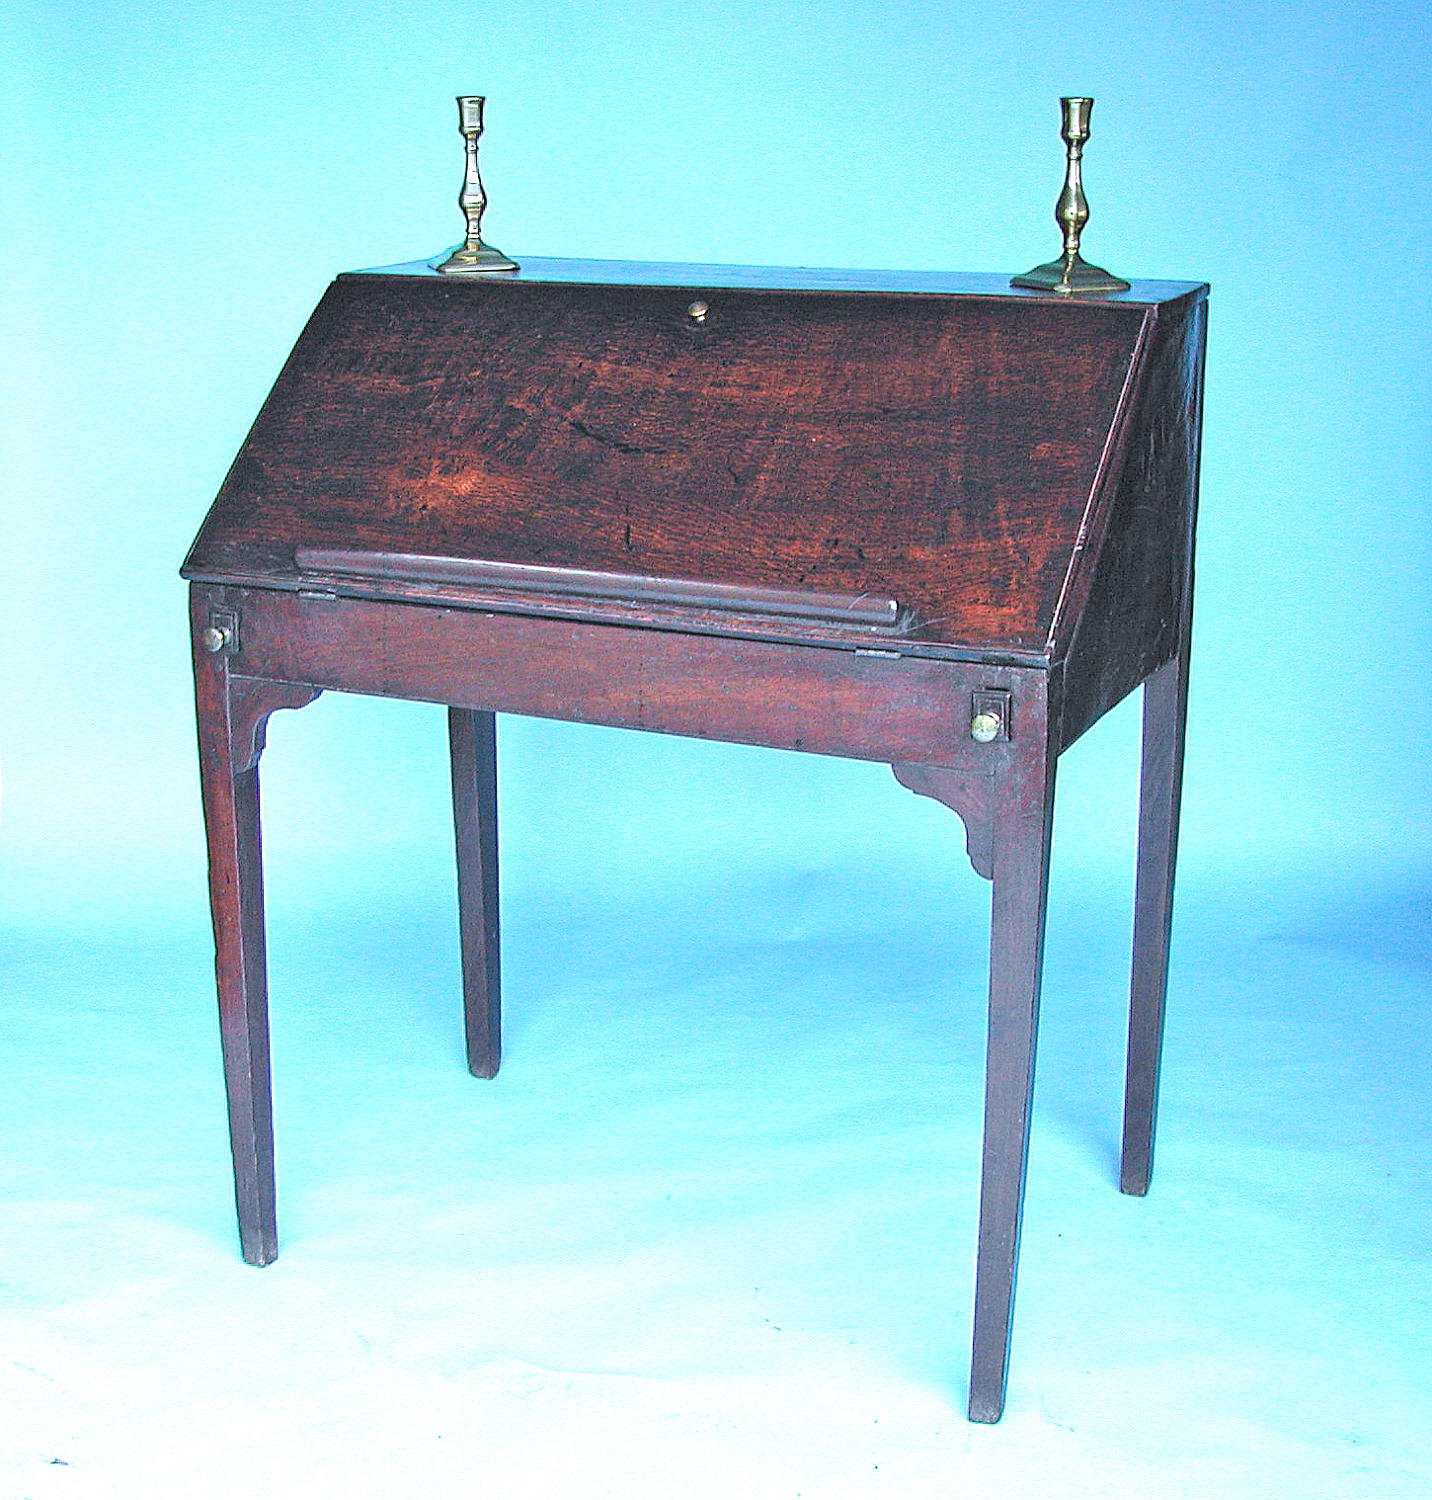 Antique Furniture 18thc Oak Writing Desk. English. C1760-80.